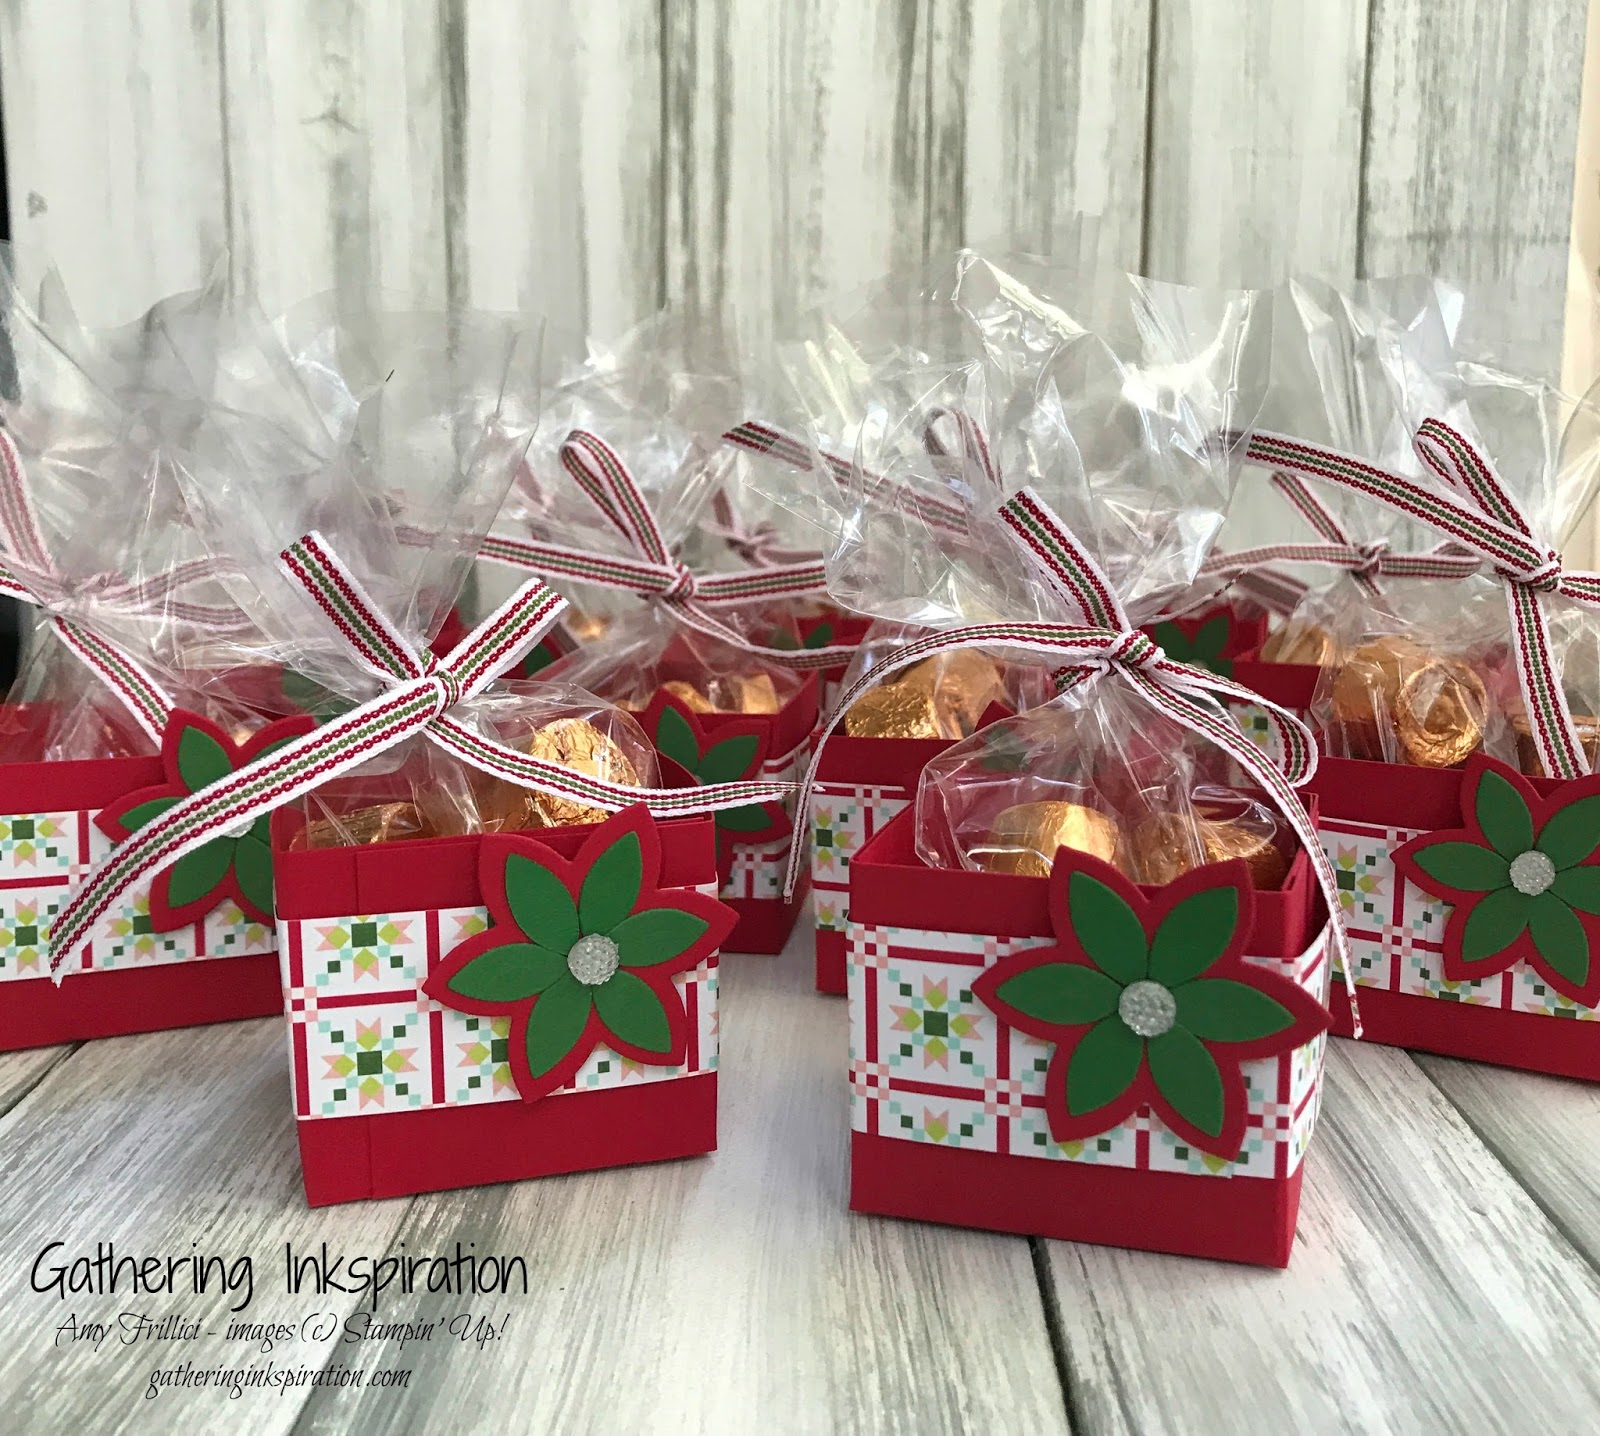 Gathering Inkspiration Quilted Christmas Treat Gift Ideas